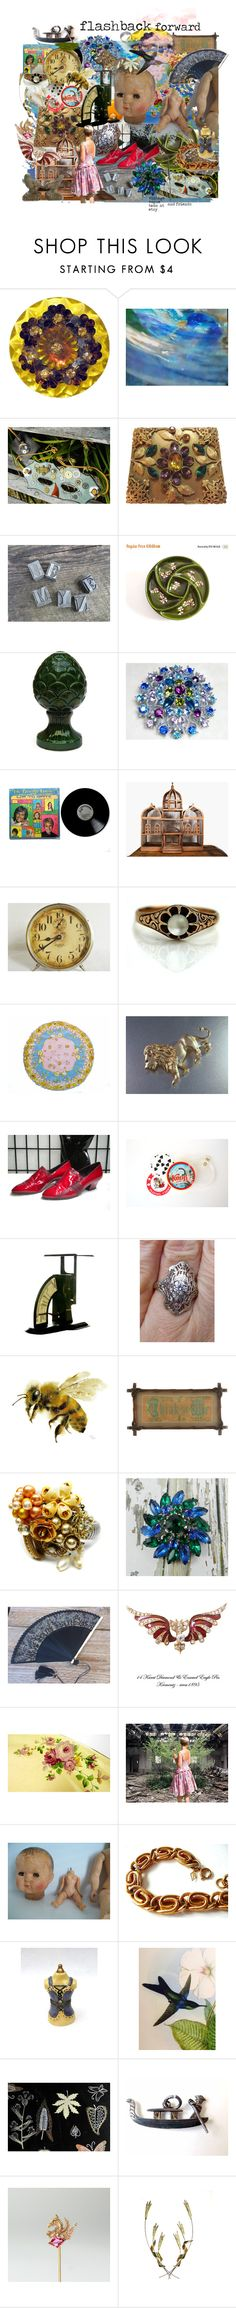 """""""flashback forward"""" by seasidecollectibles ❤ liked on Polyvore featuring Masquerade, Laval, Westclox, Krementz, Laura Ashley, Sarah Coventry, WALL, vintage, art and polyvorestyle"""